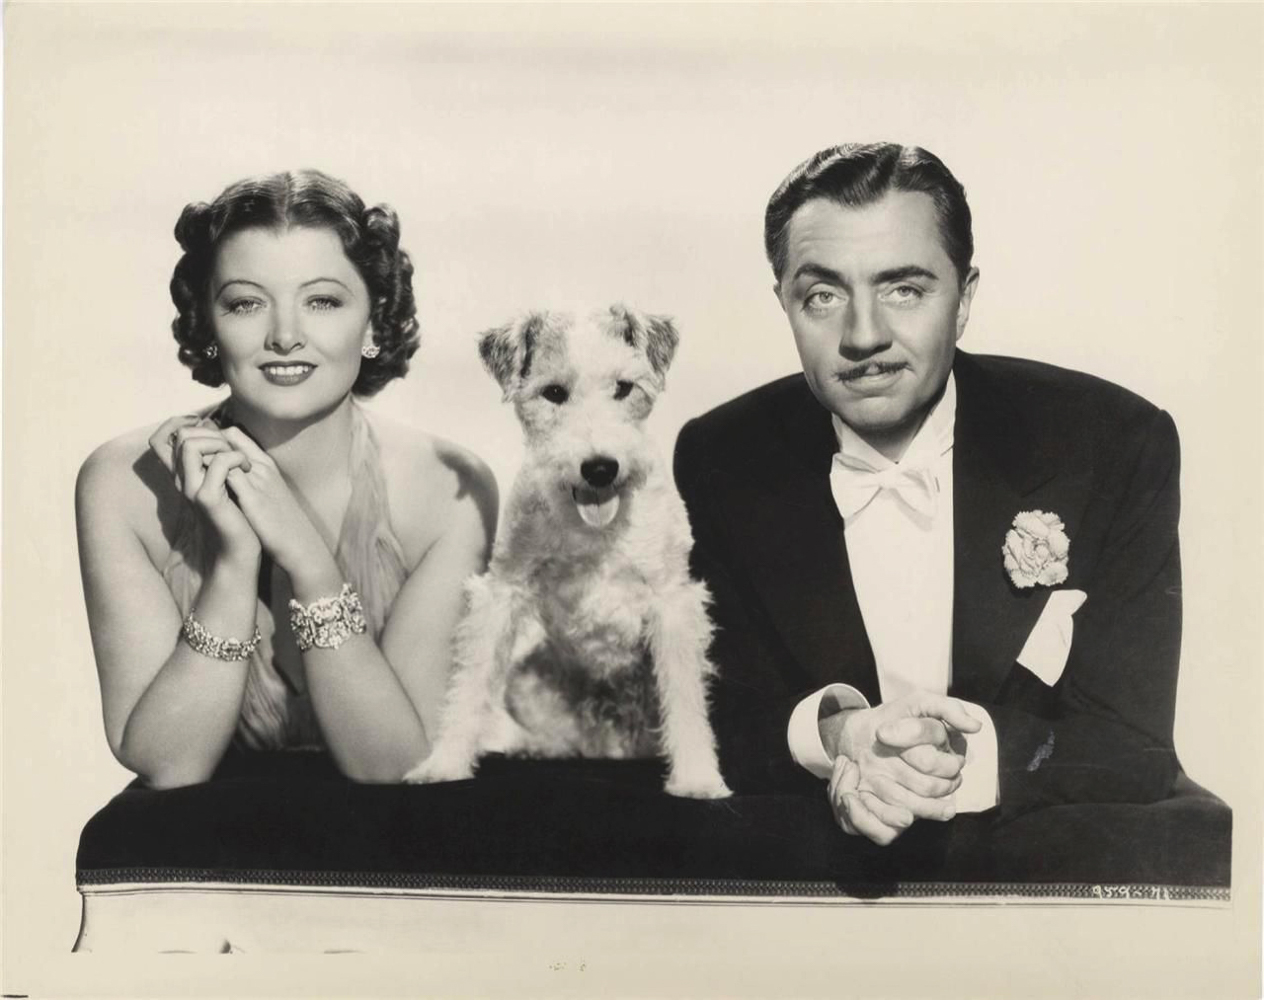 after the thin man 1936 publicity still photo 959-71